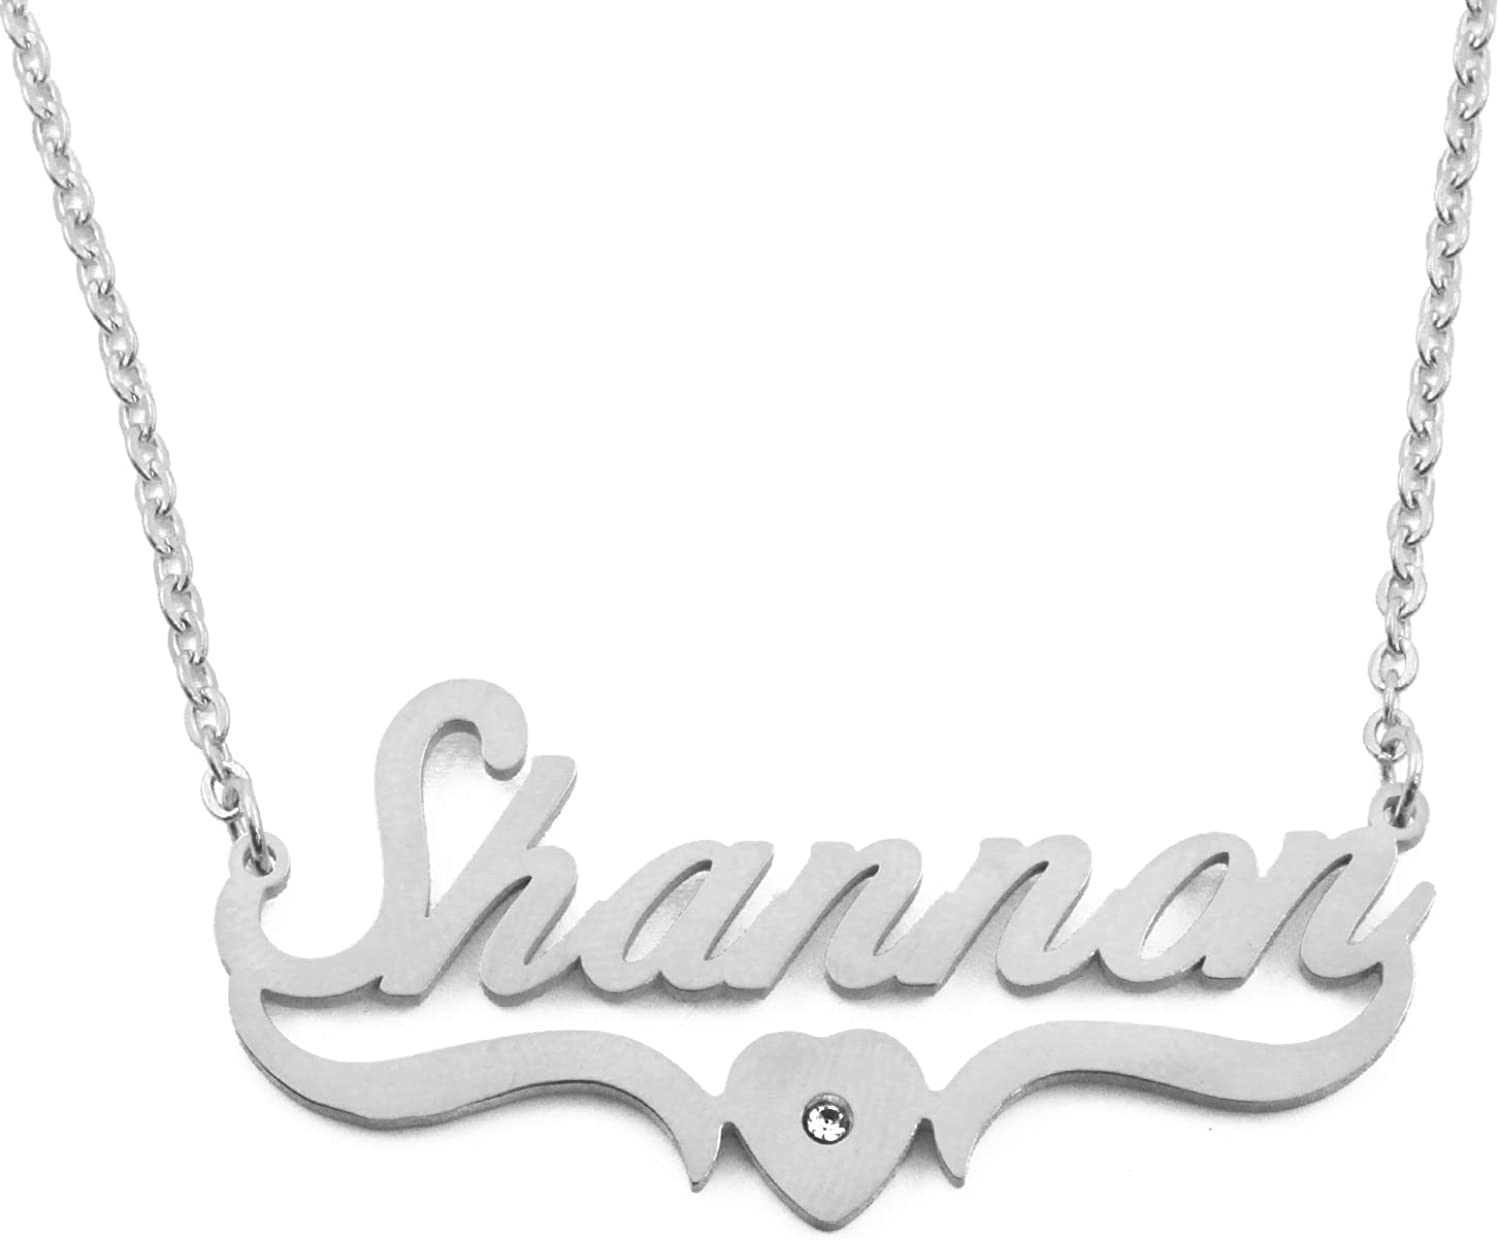 Kigu Shannon Personalized Custom Name Necklace -Silver Tone - Heart Shaped